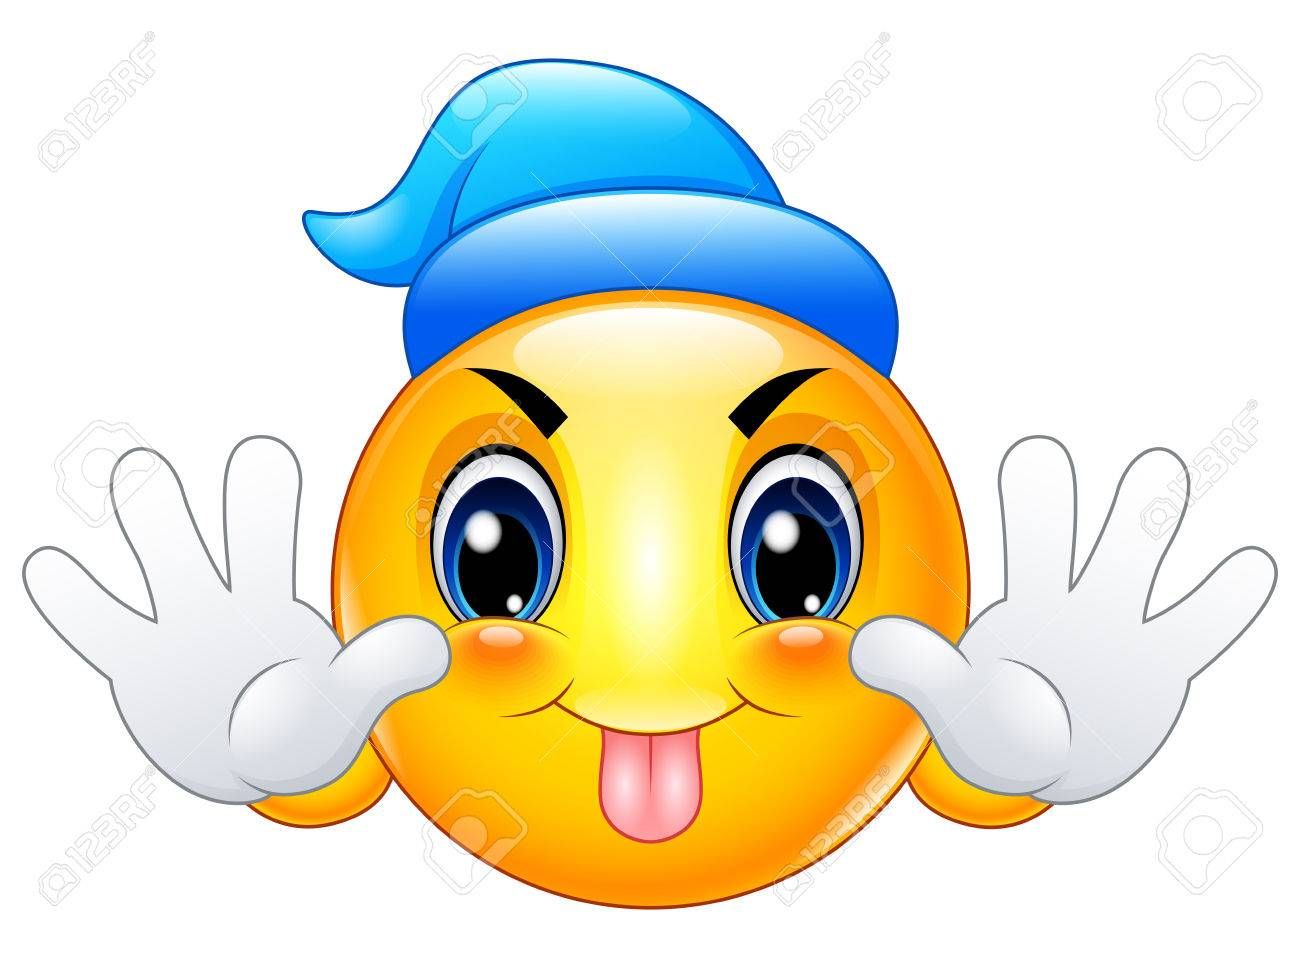 Emoticon De Bande Dessinee Qui Sort Sa Langue Clip Art Libres De Droits Vecteurs Et Illustration Image 75359014